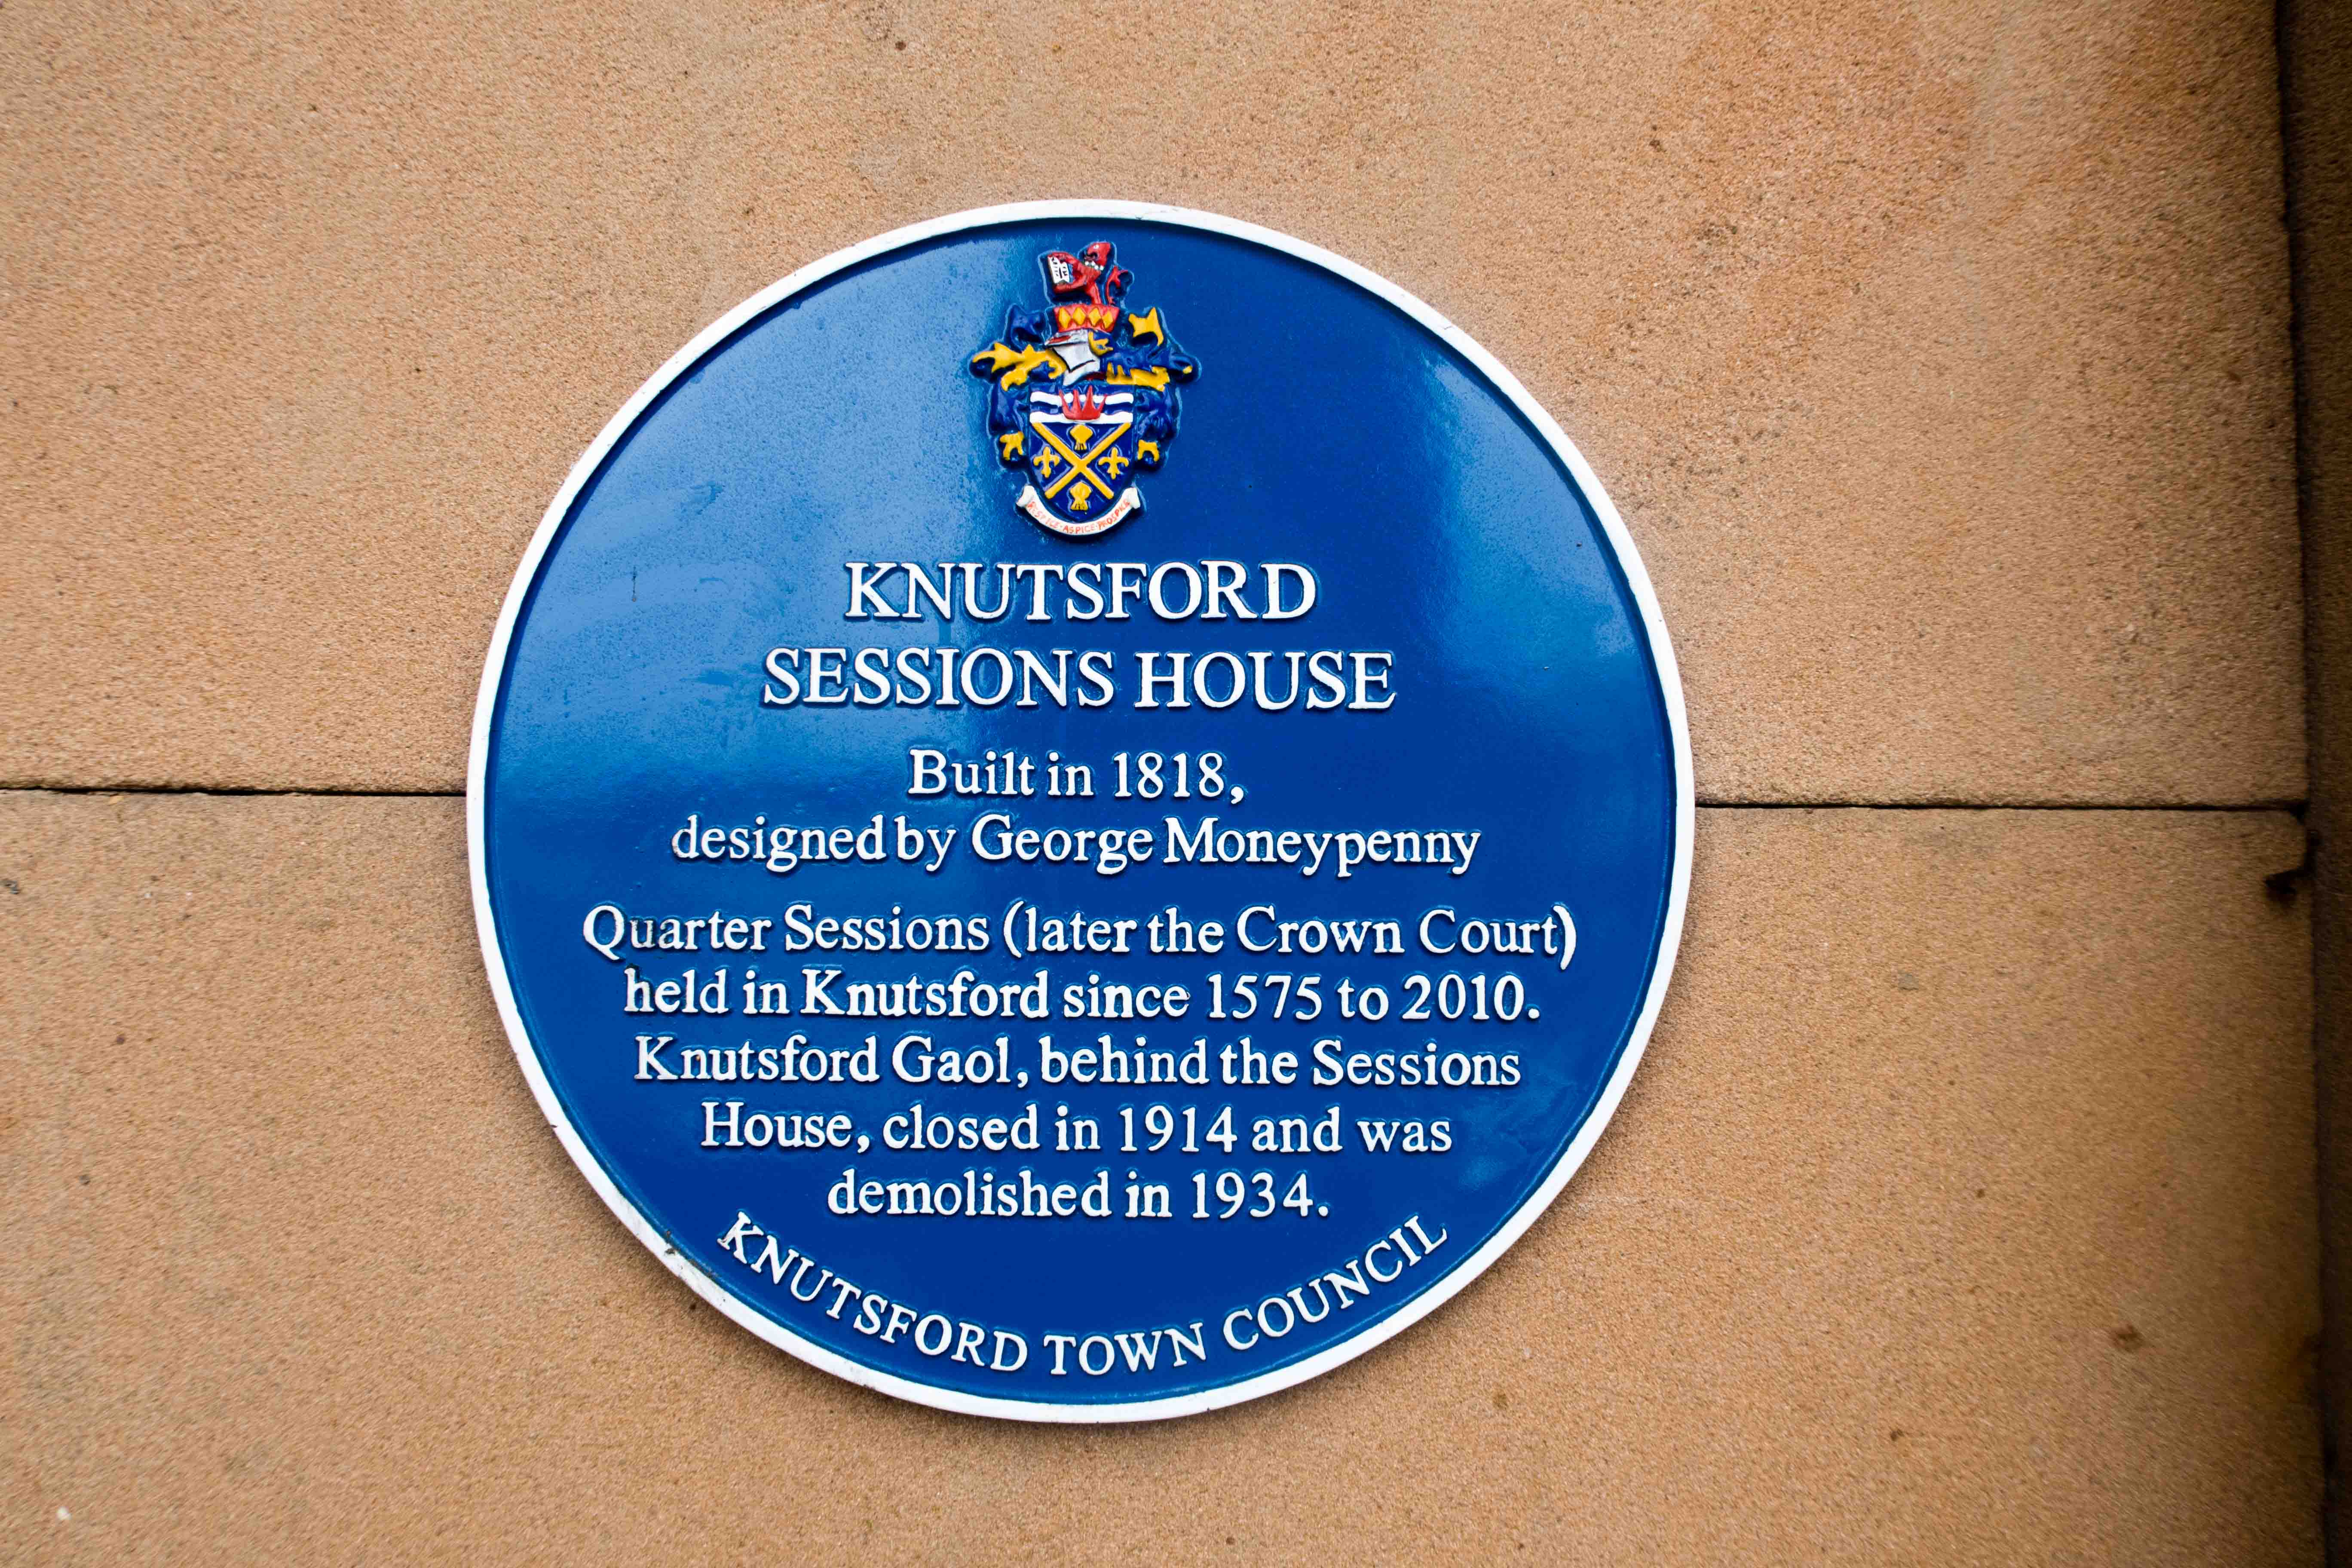 Sign for the Knutsford Sessions House 1818